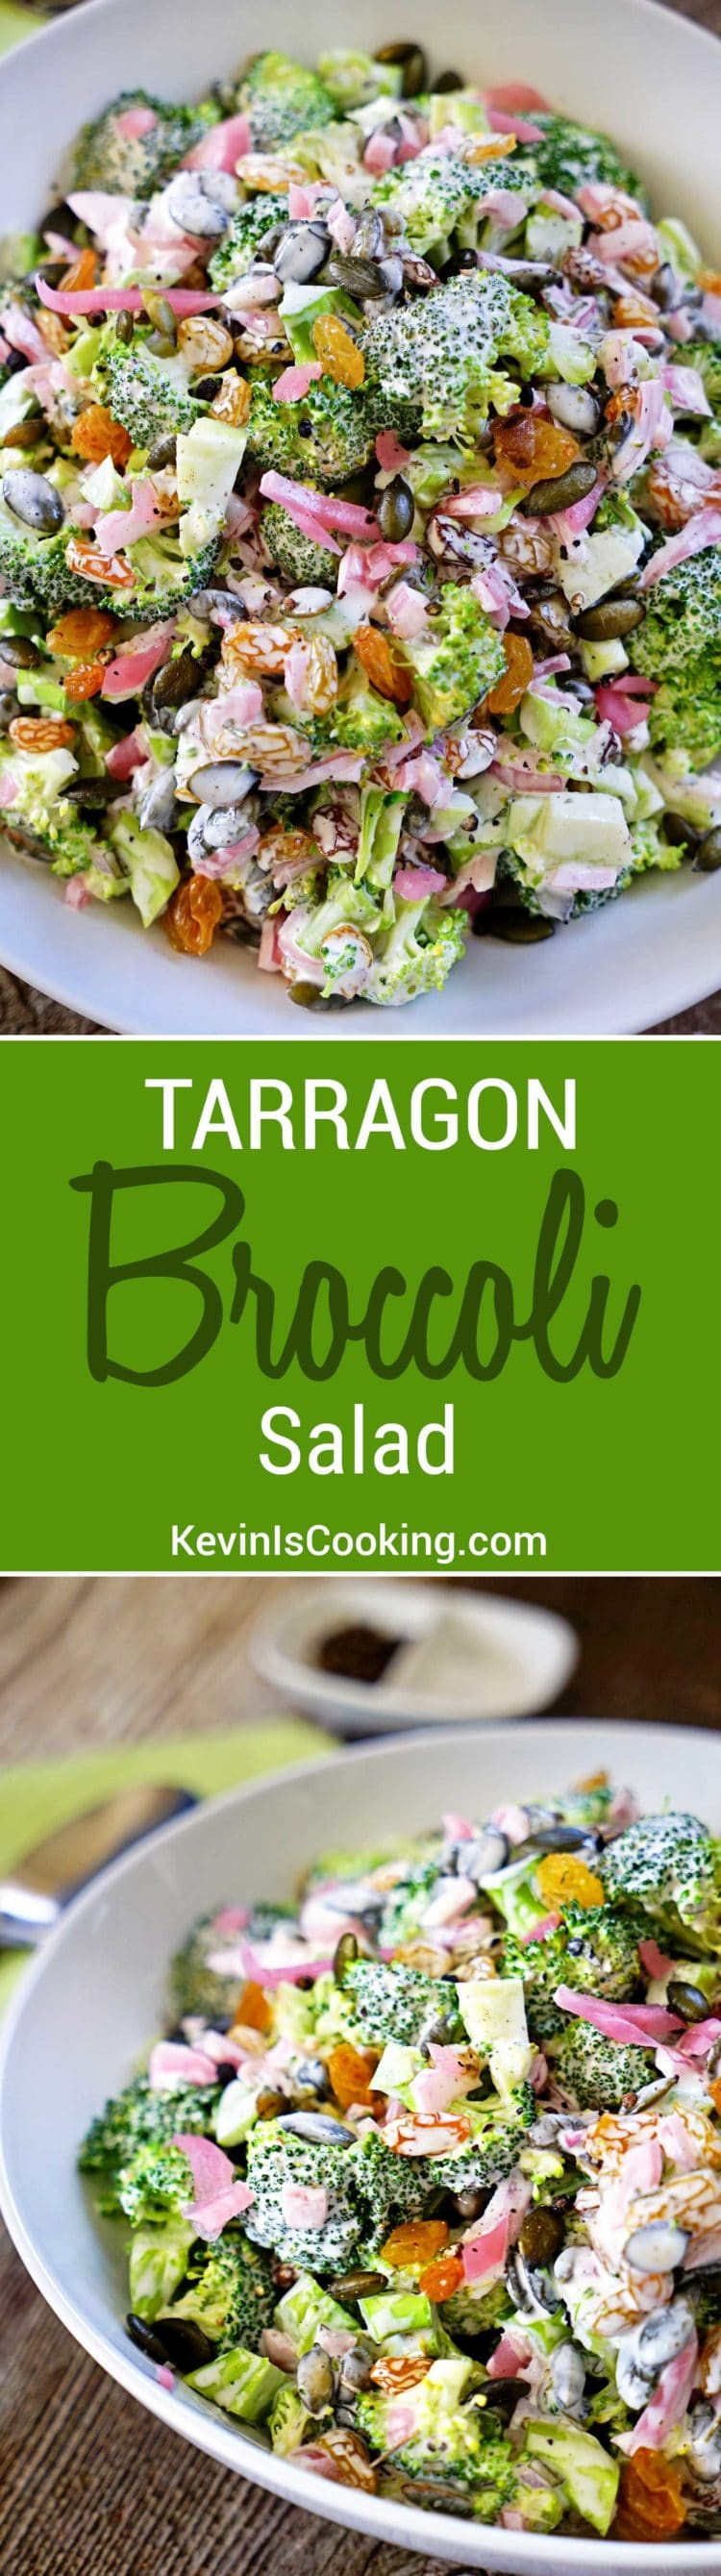 Tarragon Broccoli Salad with Golden Raisins, Marinated Red Onion and Pepitas - this fresh, crunchy and healthy salad is the perfect side dish!